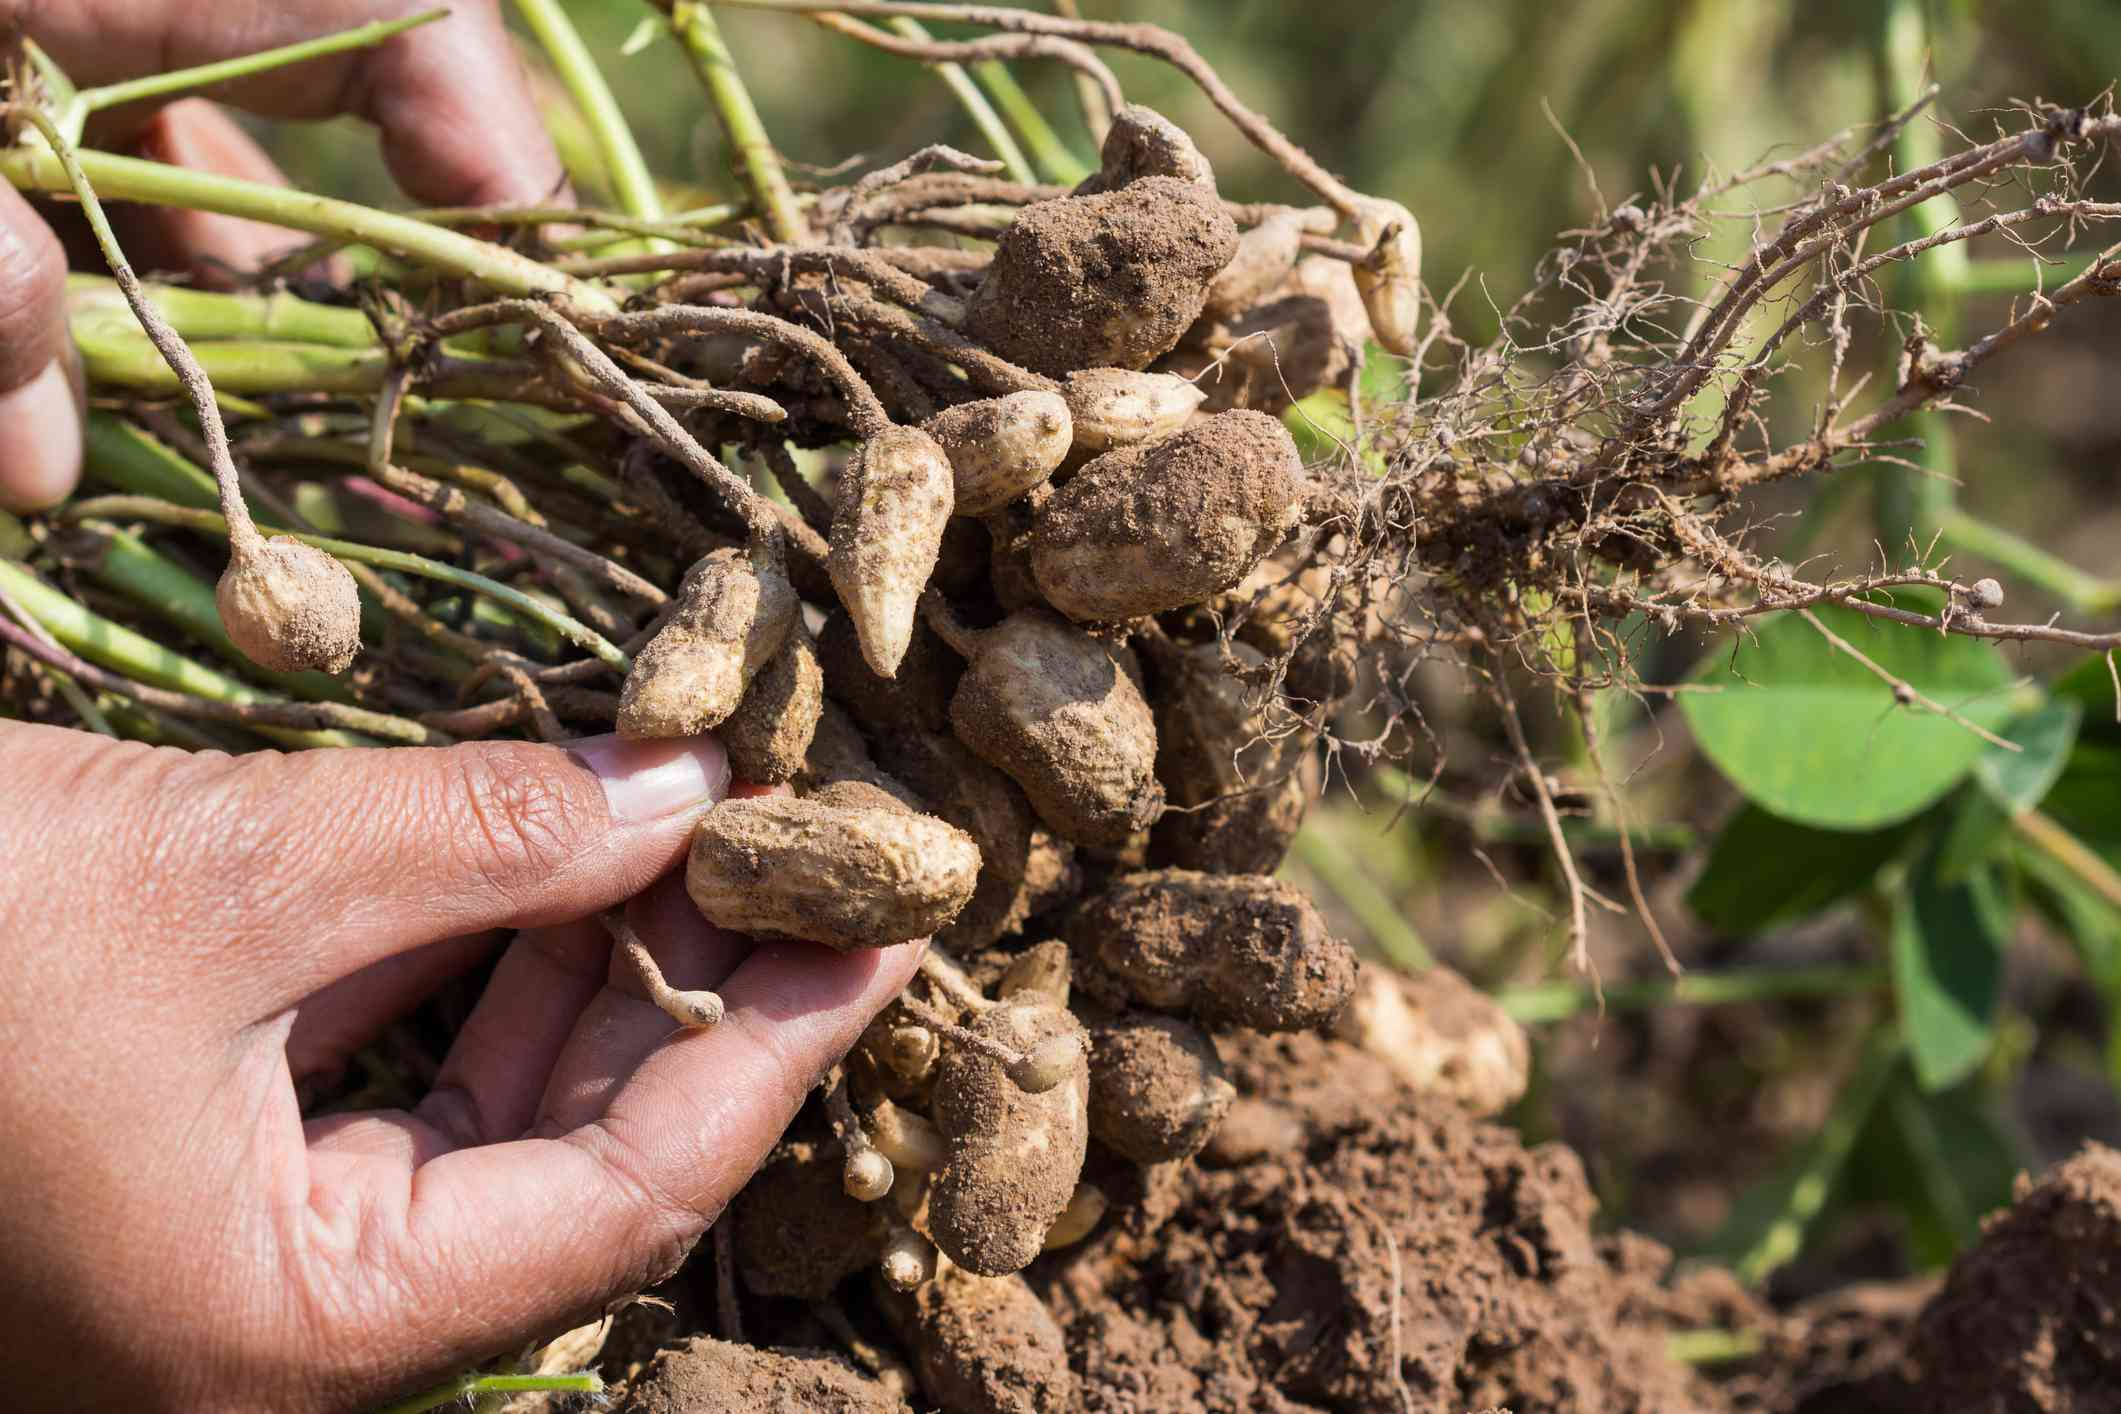 hands pull up freshly harvested peanuts covered in soil